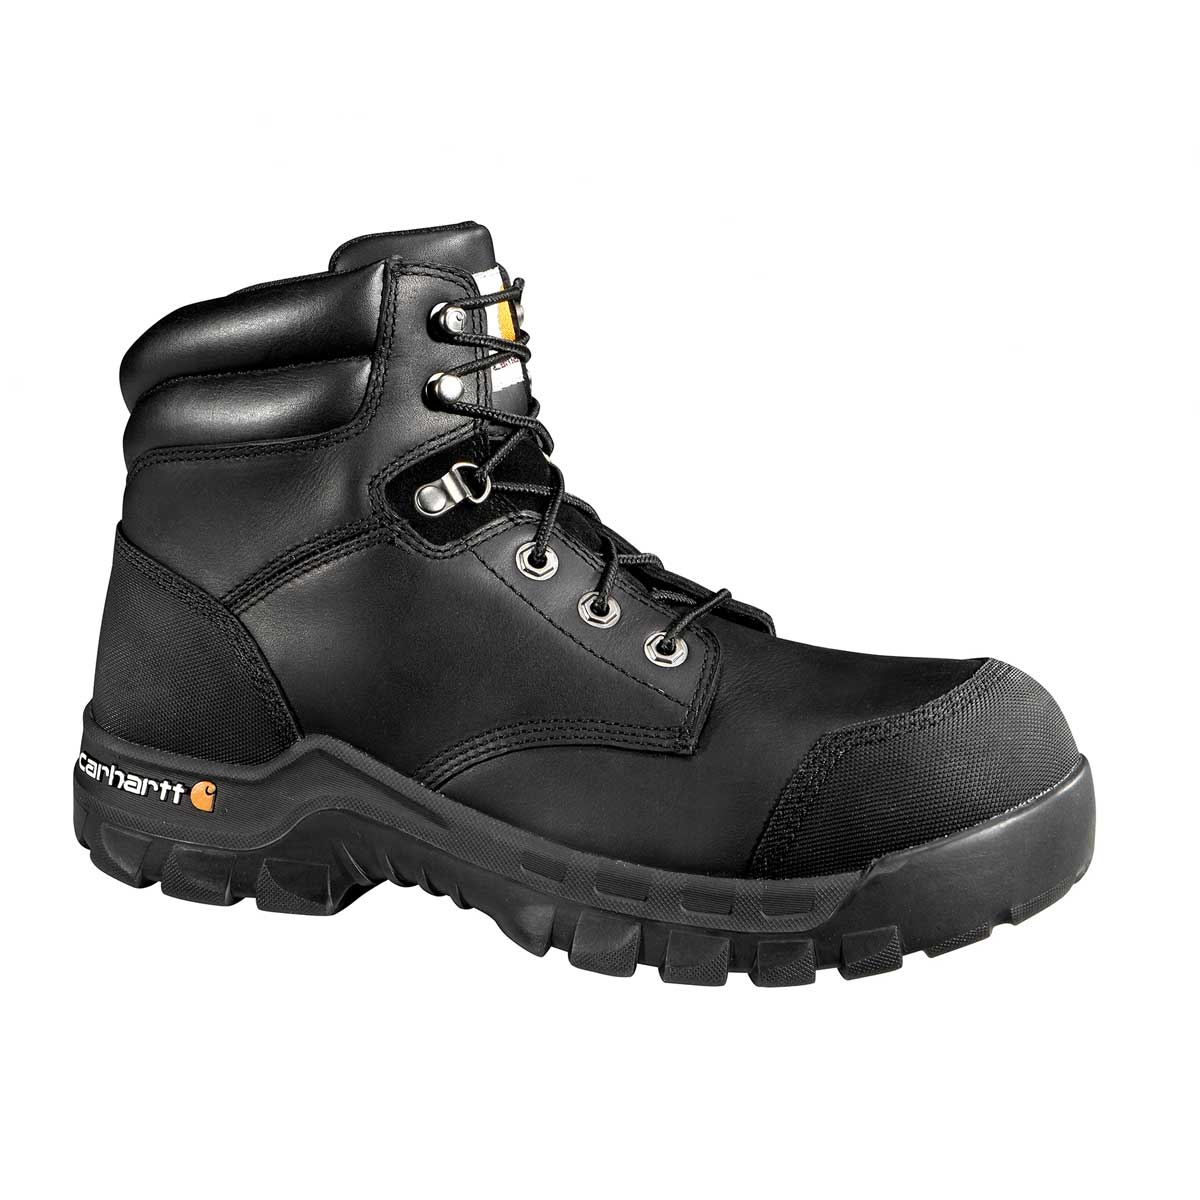 "Carhartt 6"" Rugged Flex Waterproof CSA Boot"